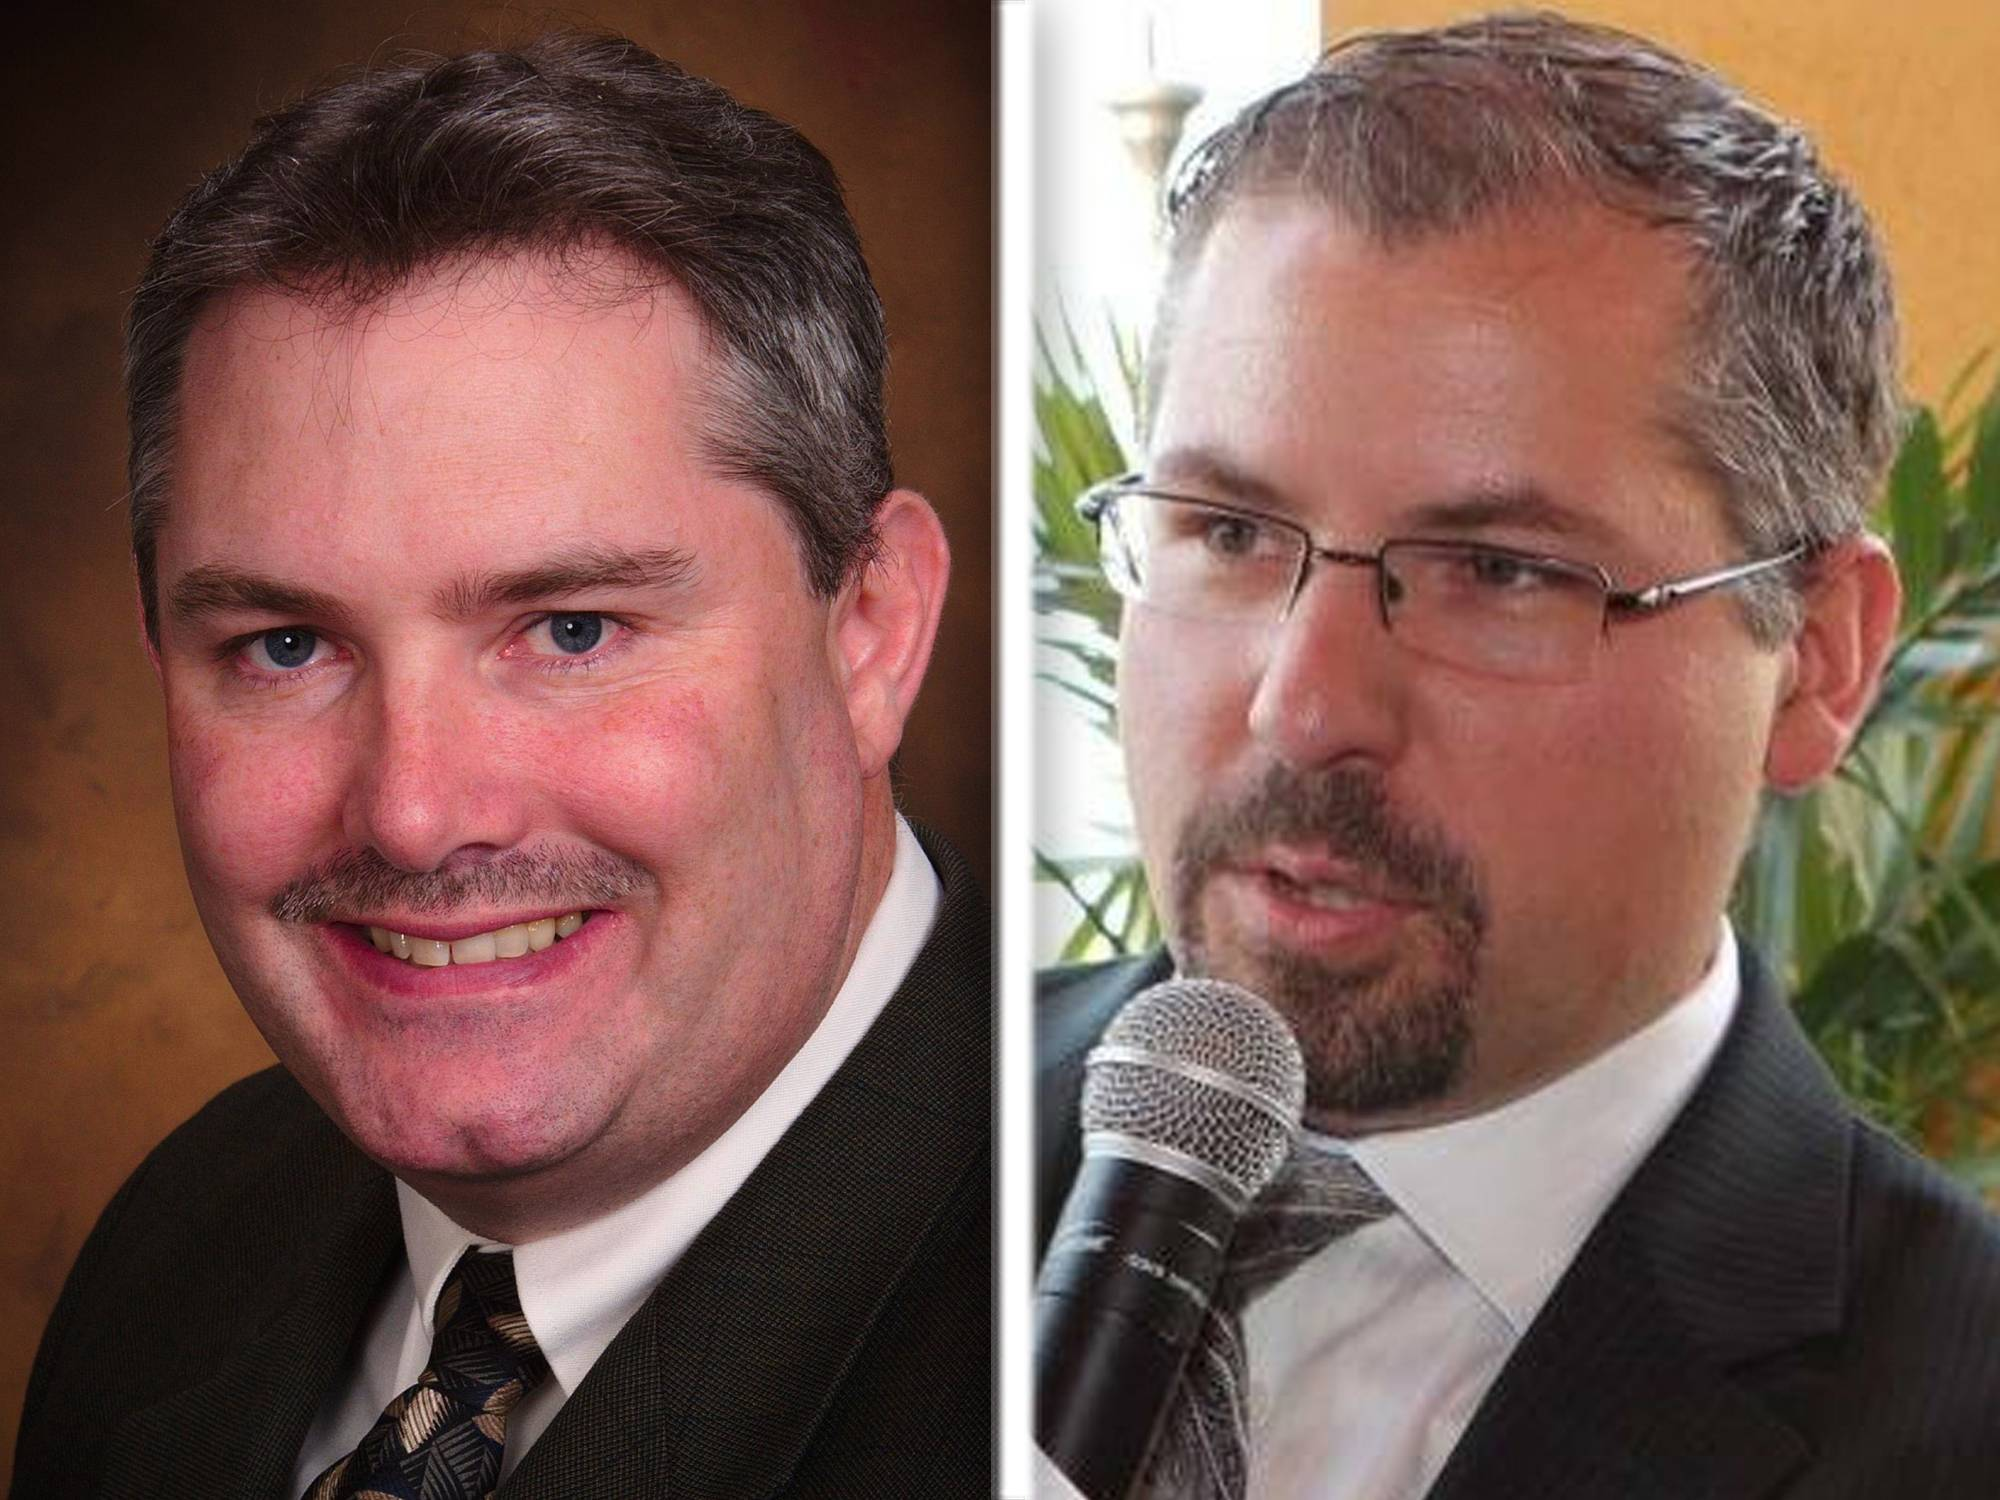 Republican David Rickert, left, and Democrat Jason Snelson are candidates for Kane County treasurer